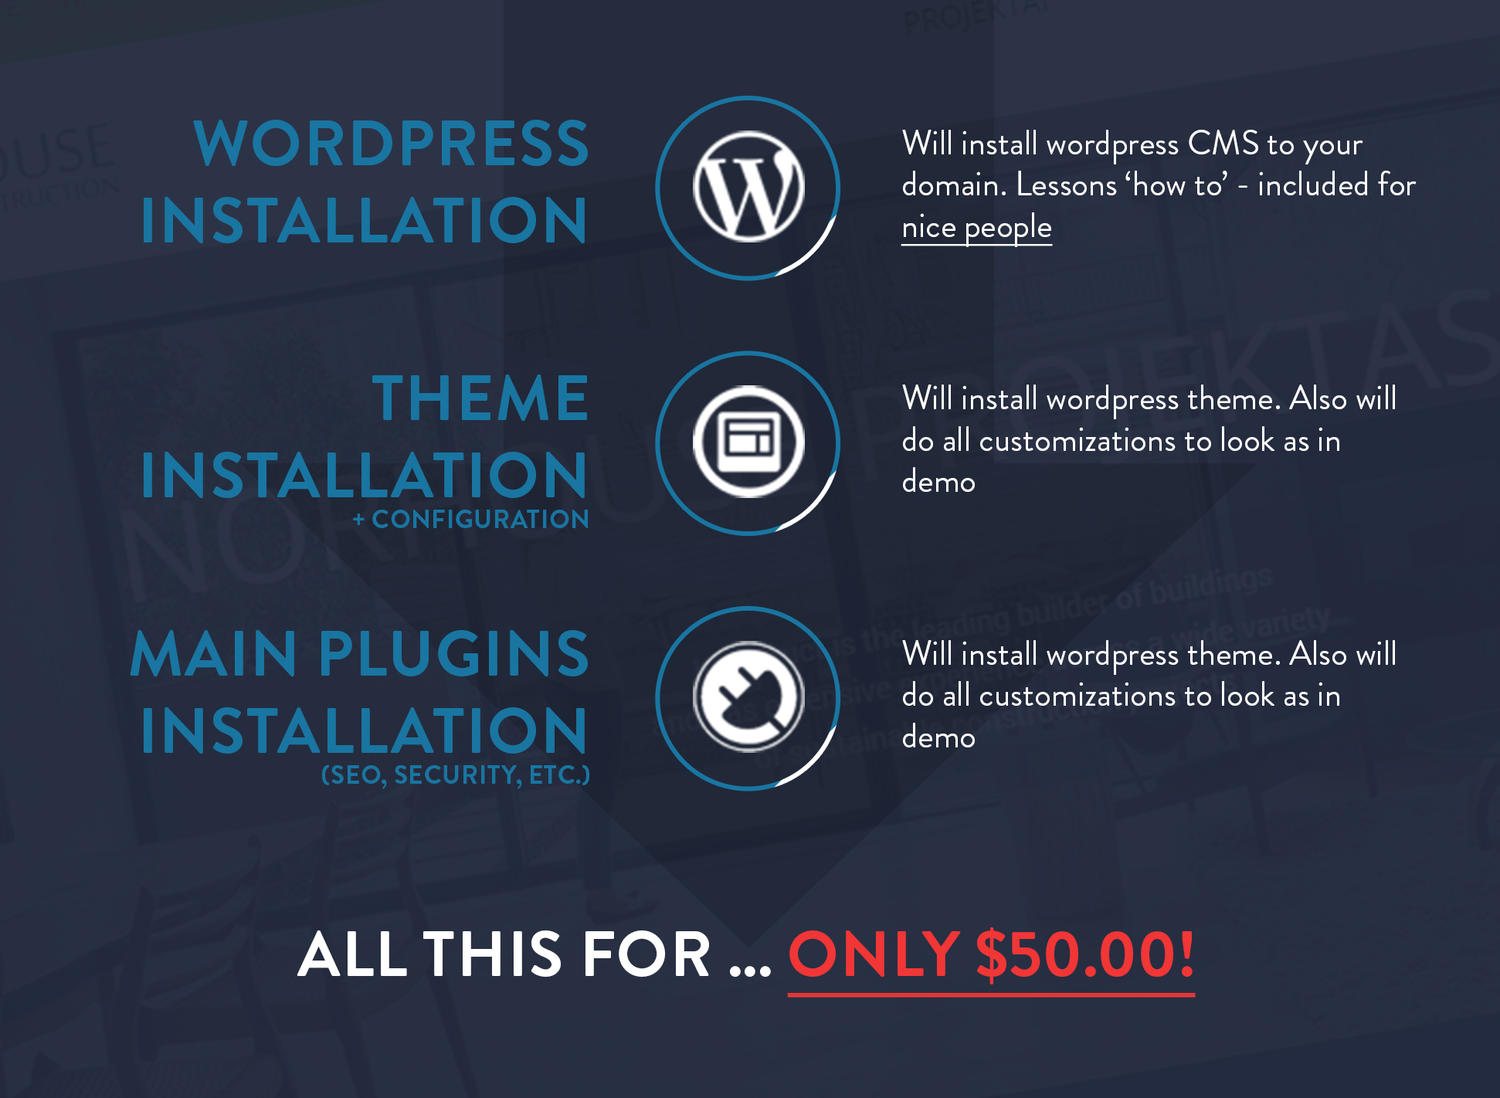 Wordpress CMS + Theme + Plugins Installation (with your content) by baranmod - 82756